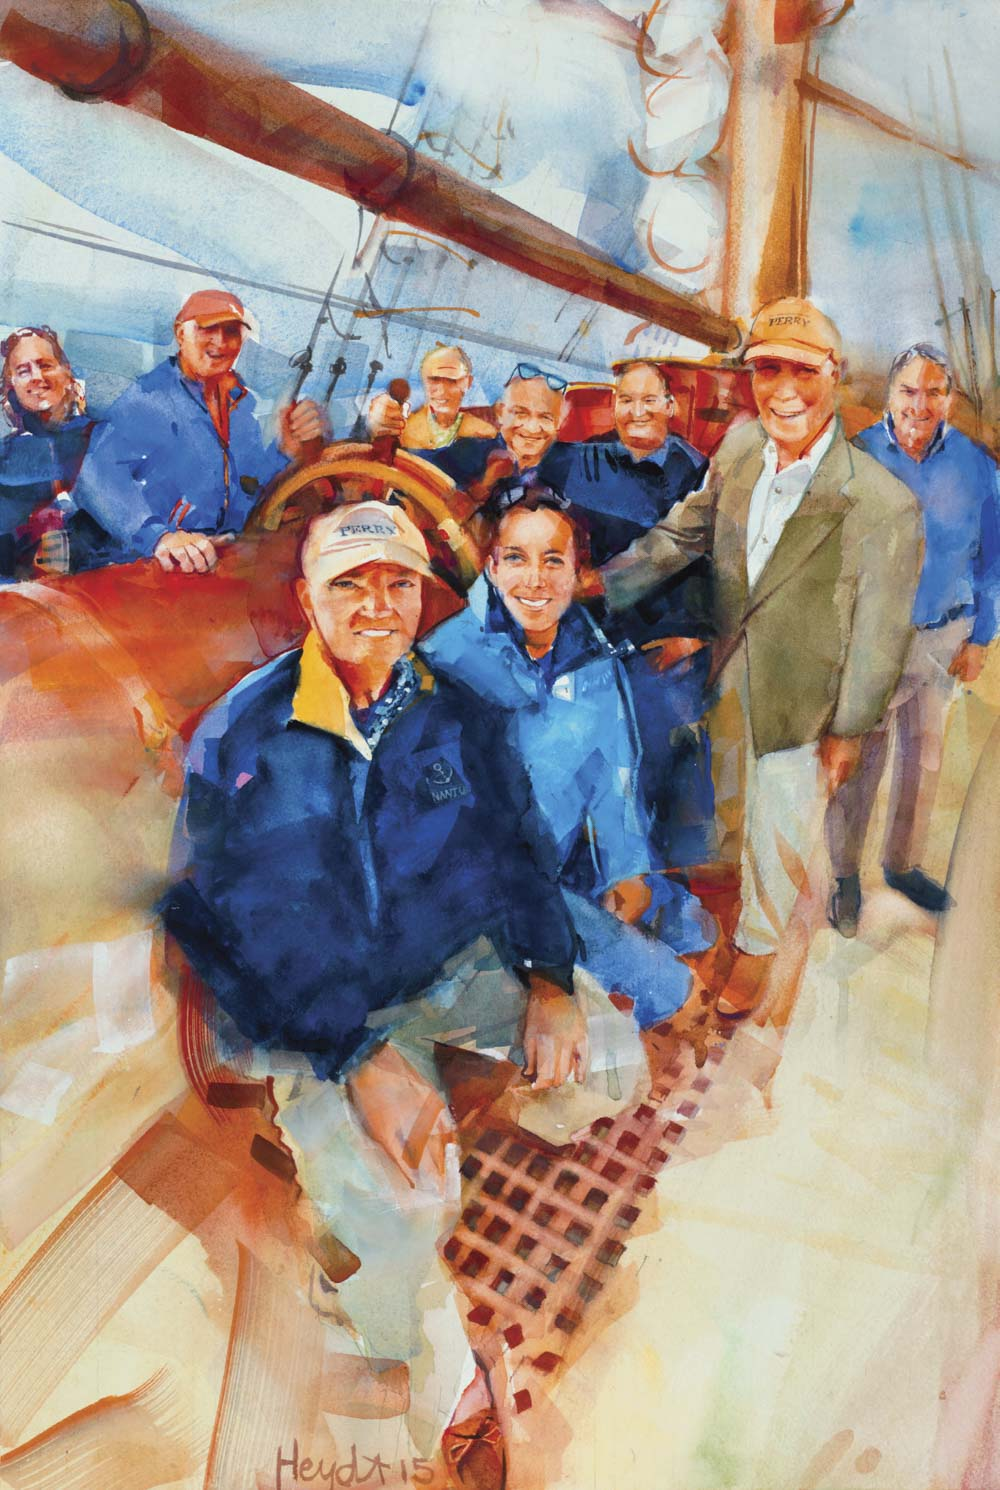 The team behind Rhode Island's newest Tall Ship, SSV Oliver Hazard Perry